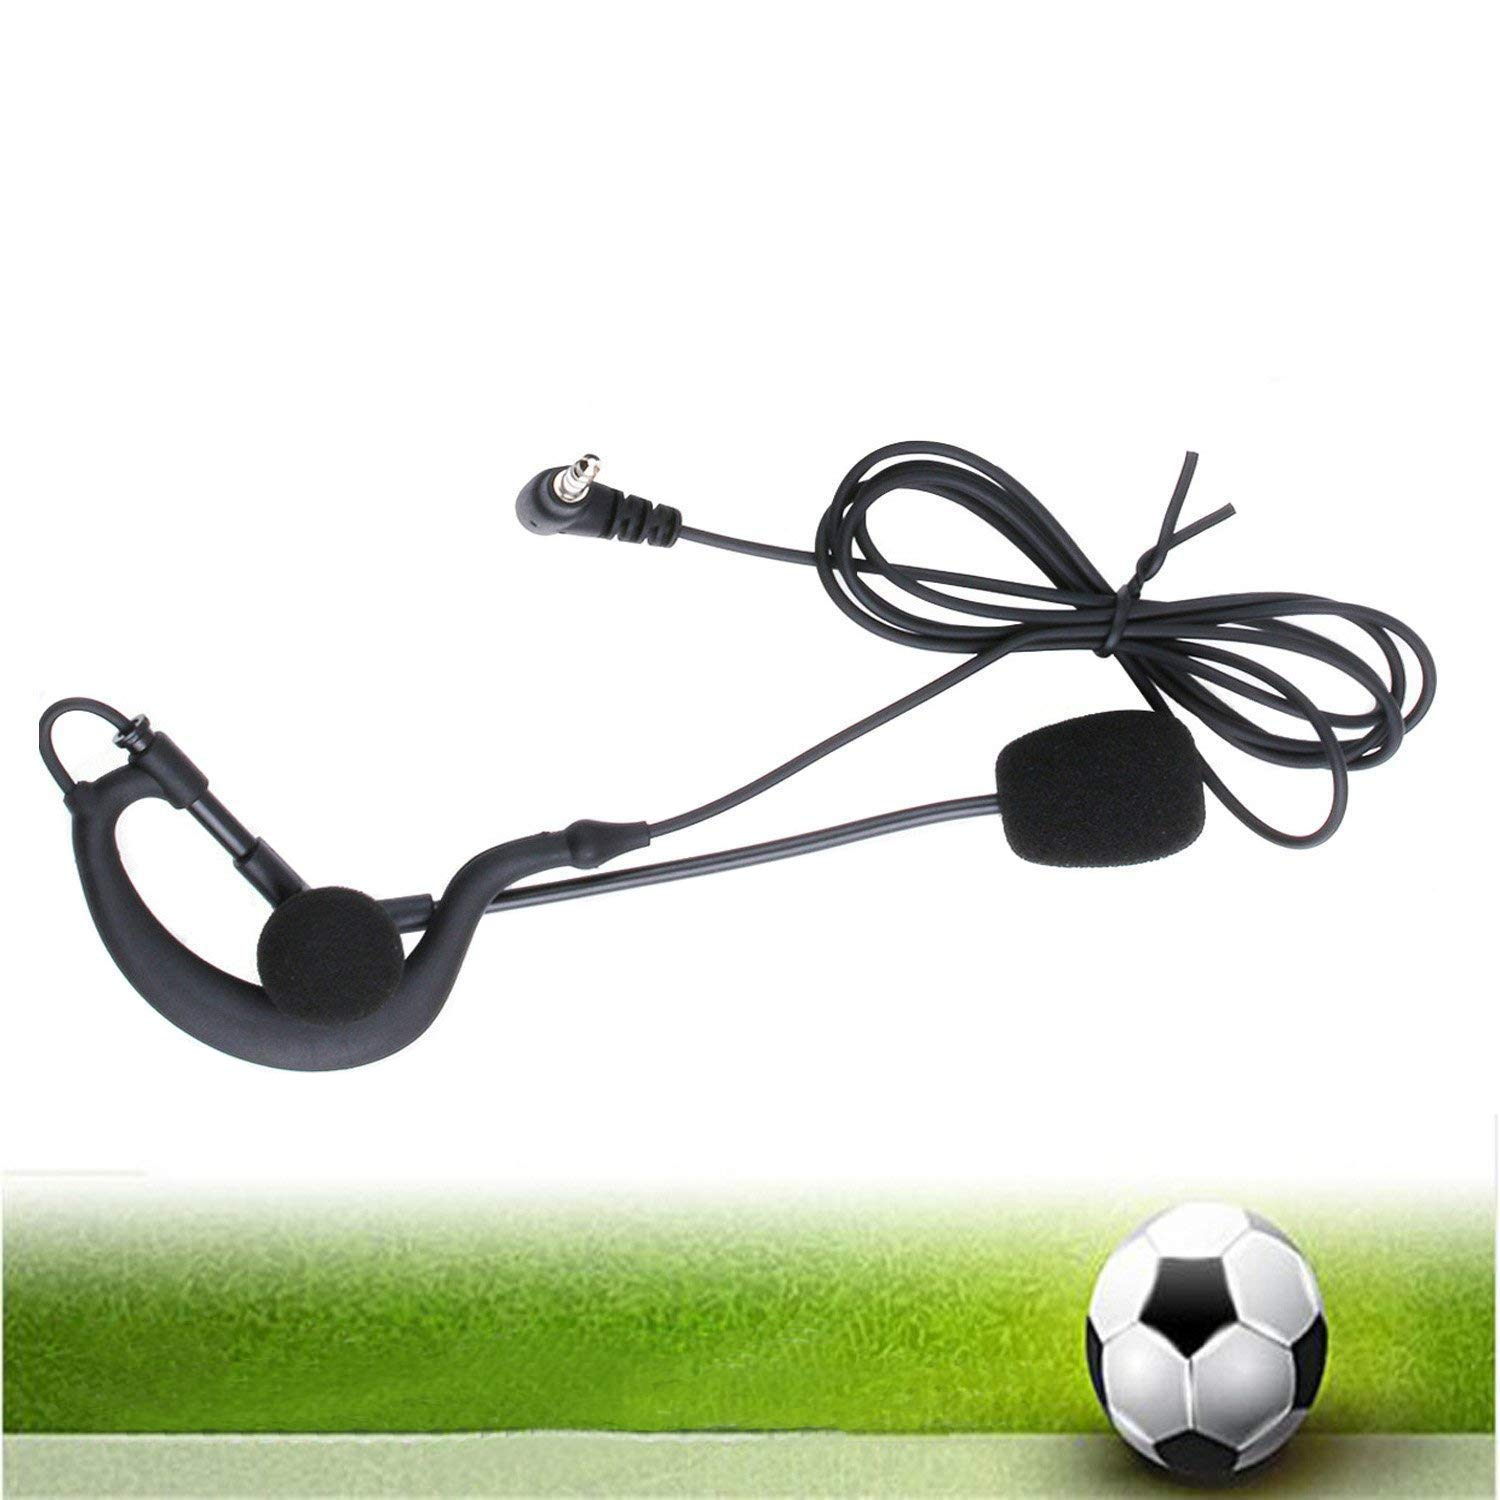 Vnetphone Soccer Football Referee Intercom Microphone Headset Earphone and Coach Referee Headphones for V6/V4/FBIM Referee Intercom 4333025056